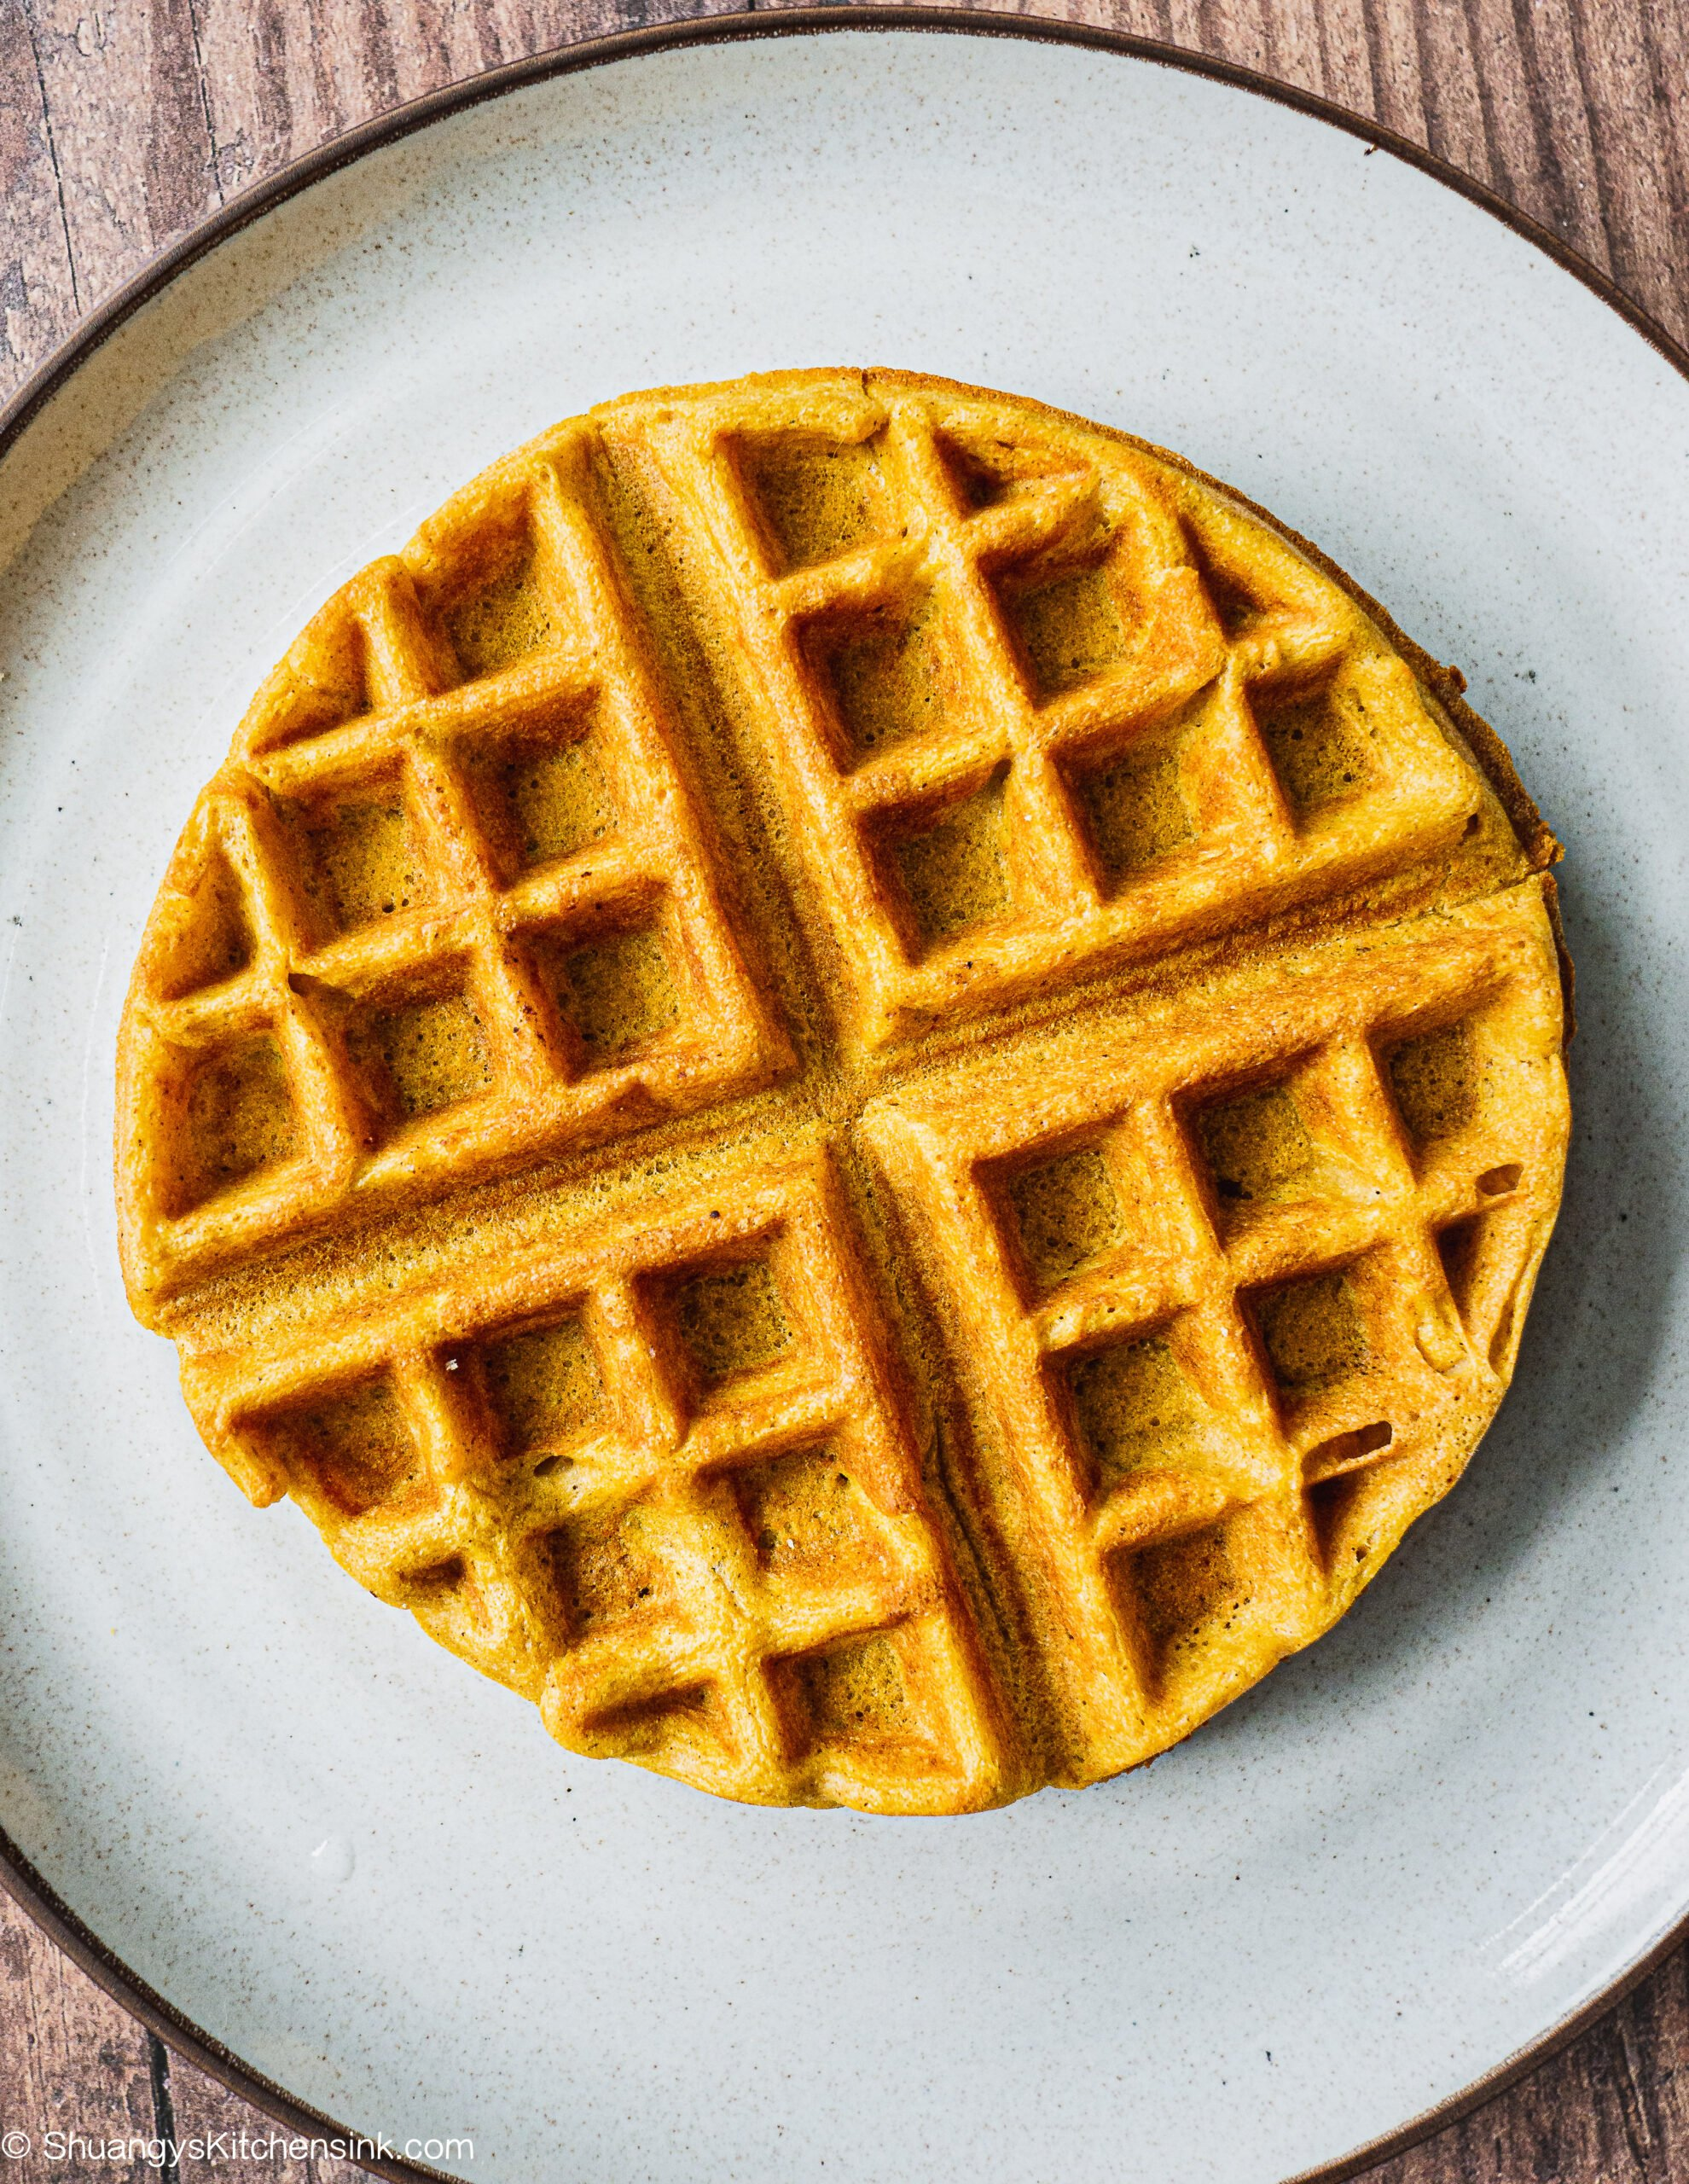 A plain pumpkin waffle on a plate. it looks crispy and golden.